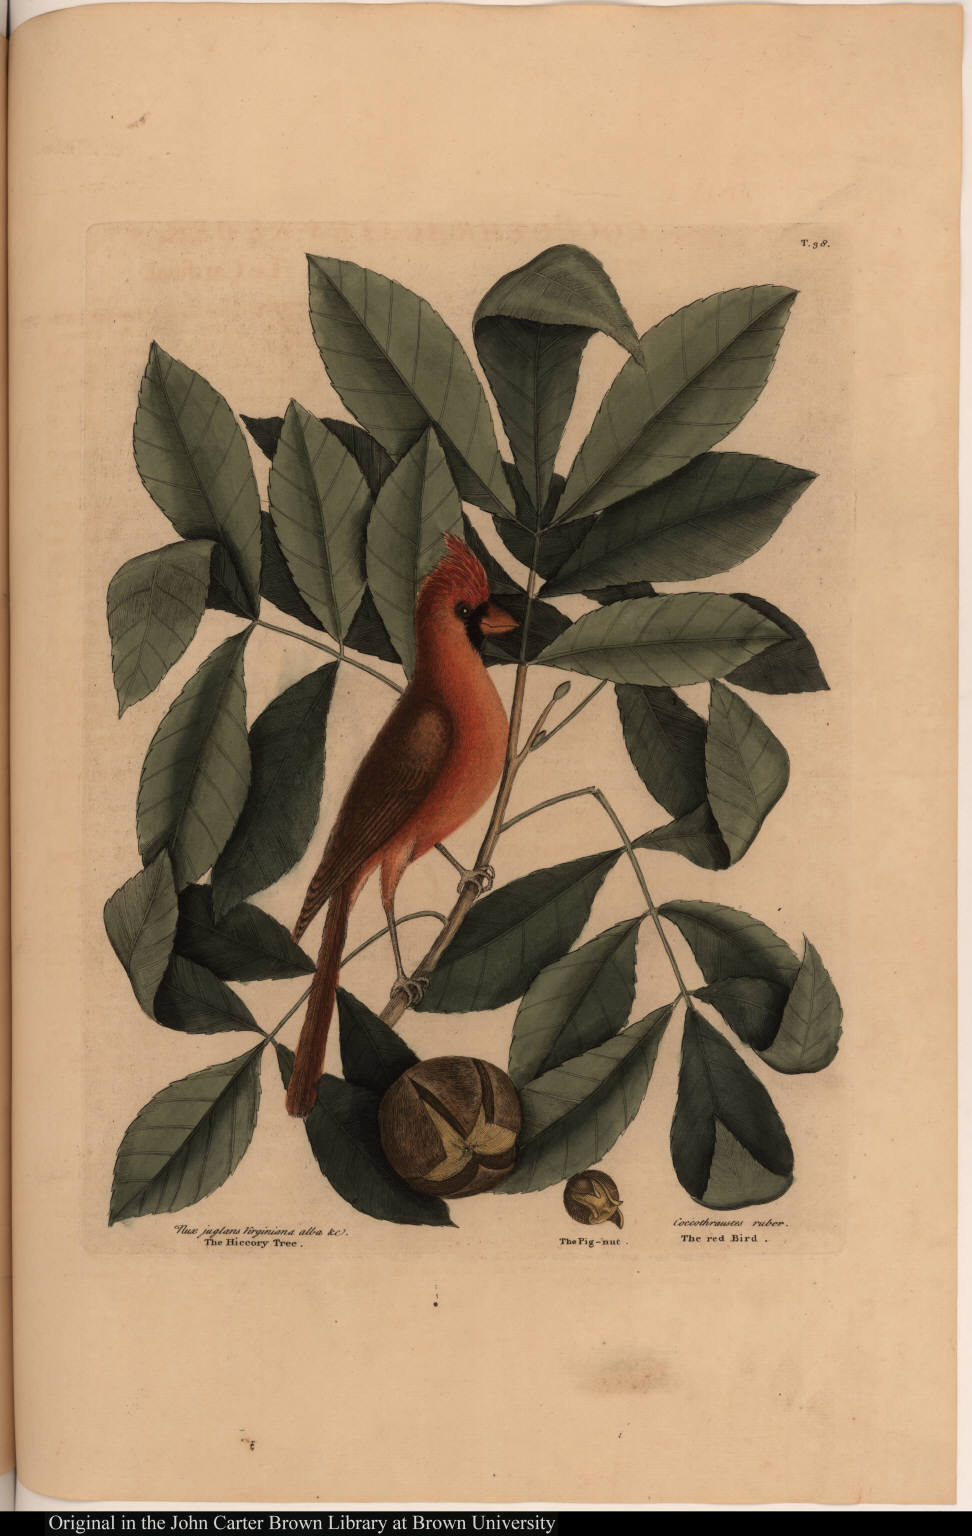 Nux juglans Virginiana alba &c. The Hiccory Tree. The Pig-nut. Coccothraustes ruber. The red Bird.